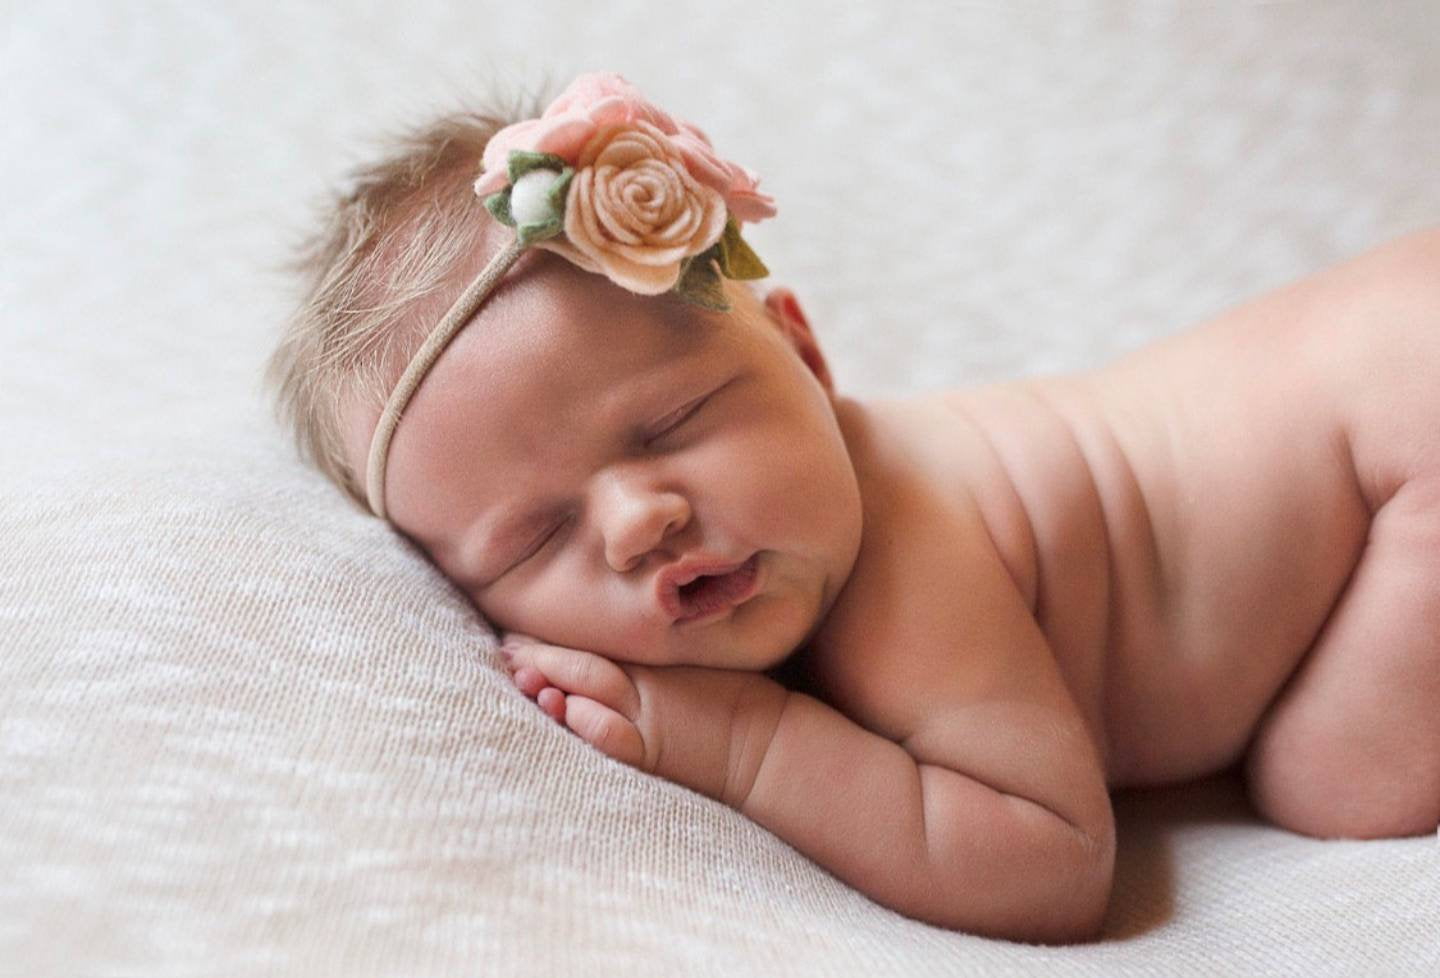 Dainty Floral Headband, mini rosettes, blush, pale pink, felt flower, newborn hair accessories, mini, baby headbands, vanaguelite